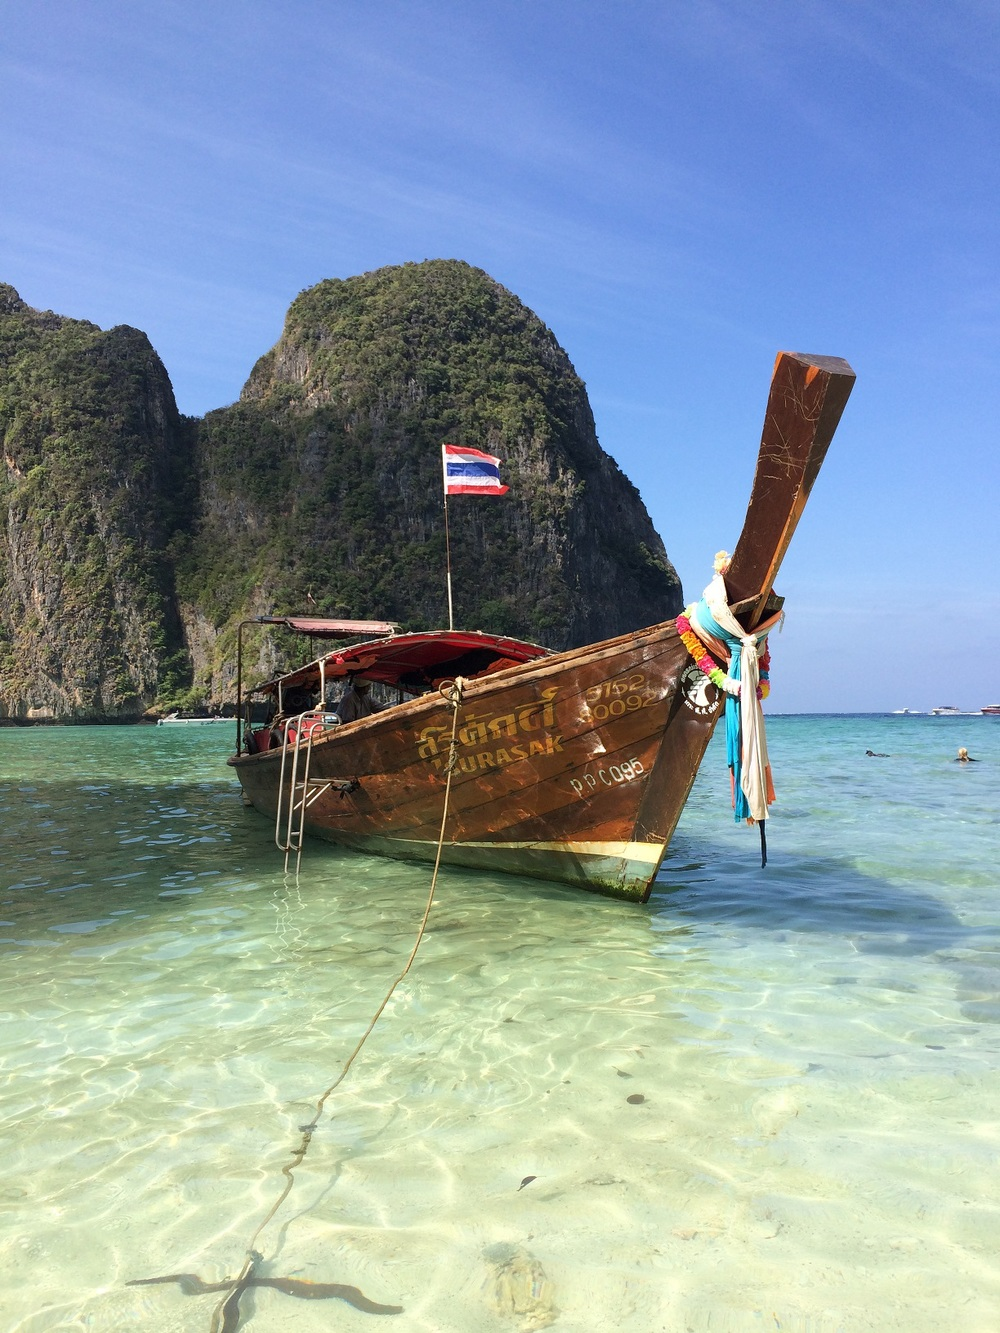 Docked the boat off of Koh Phi Phi Ley